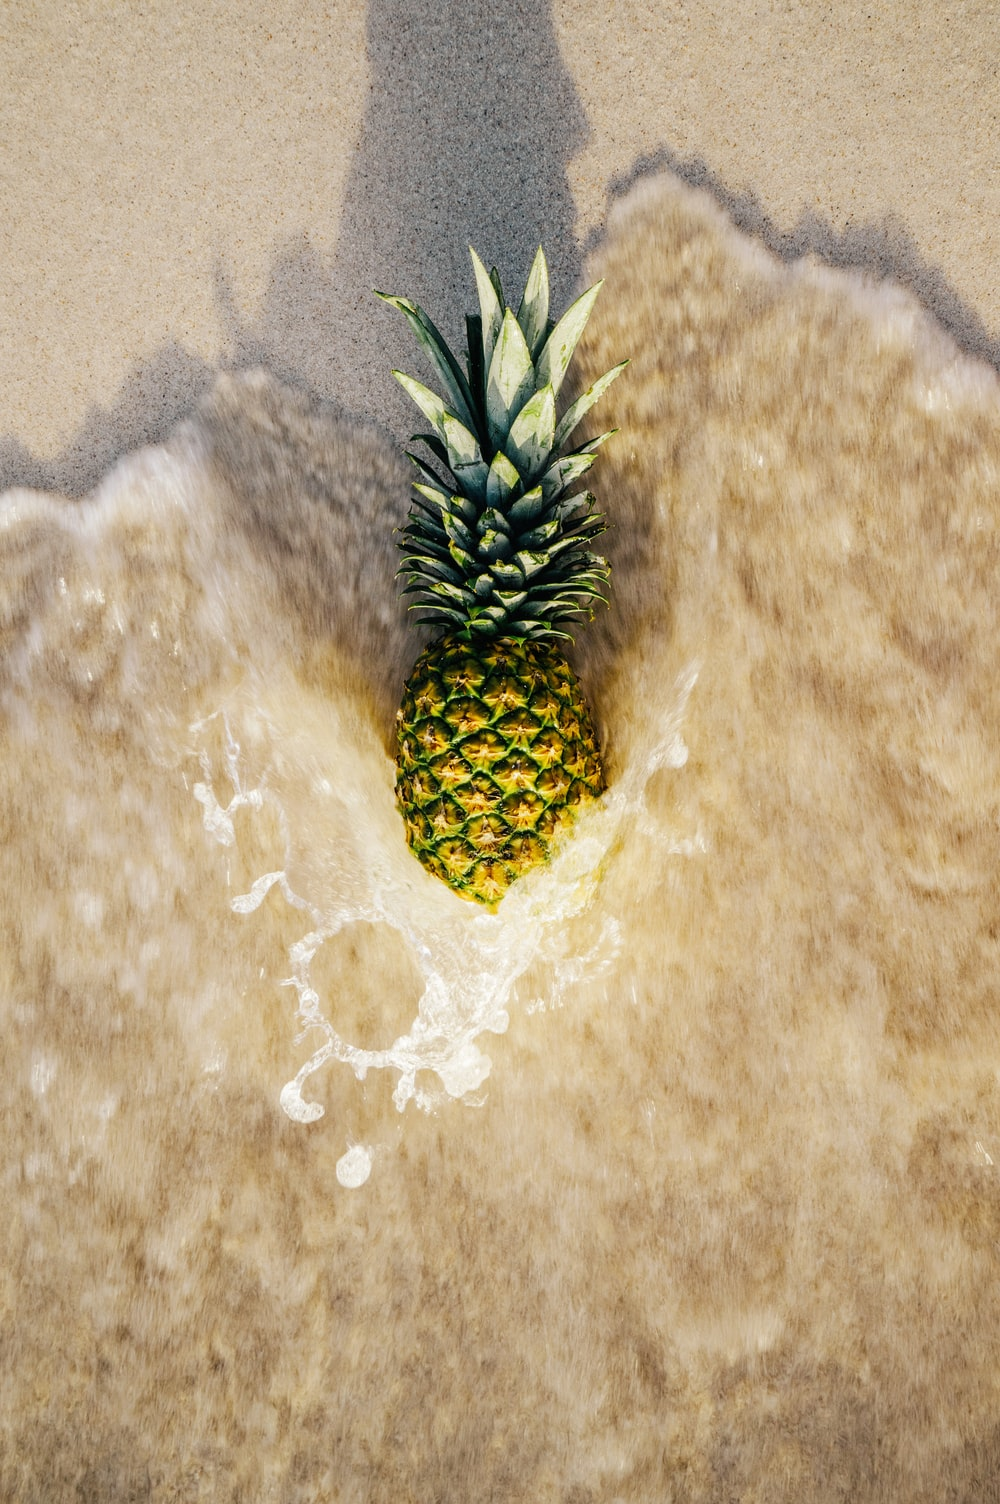 yellow and green pineapple on brown sand